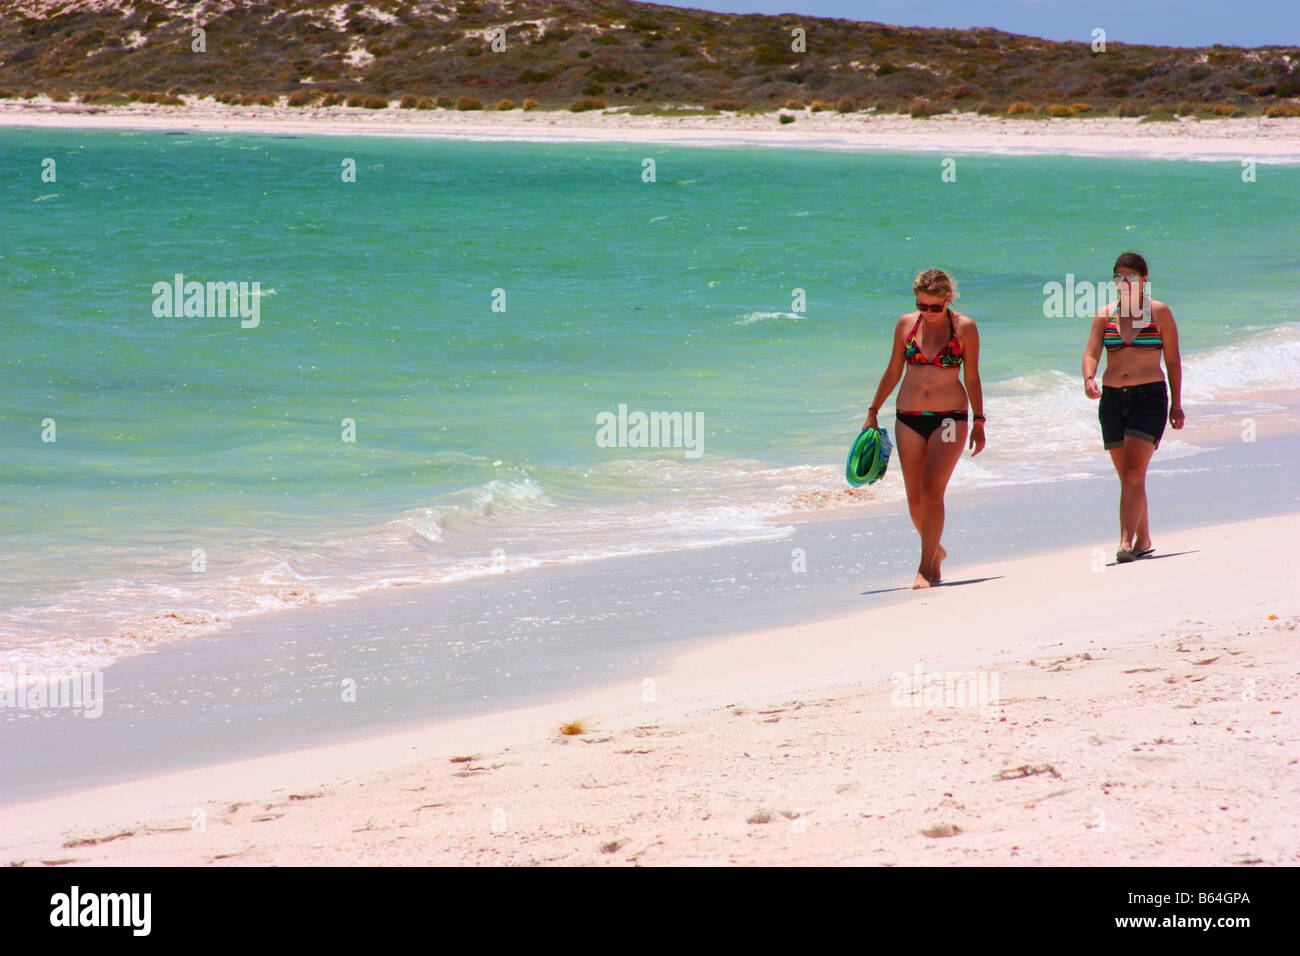 two people on the beach at east wallabi island in the abrolhos islands - Stock Image